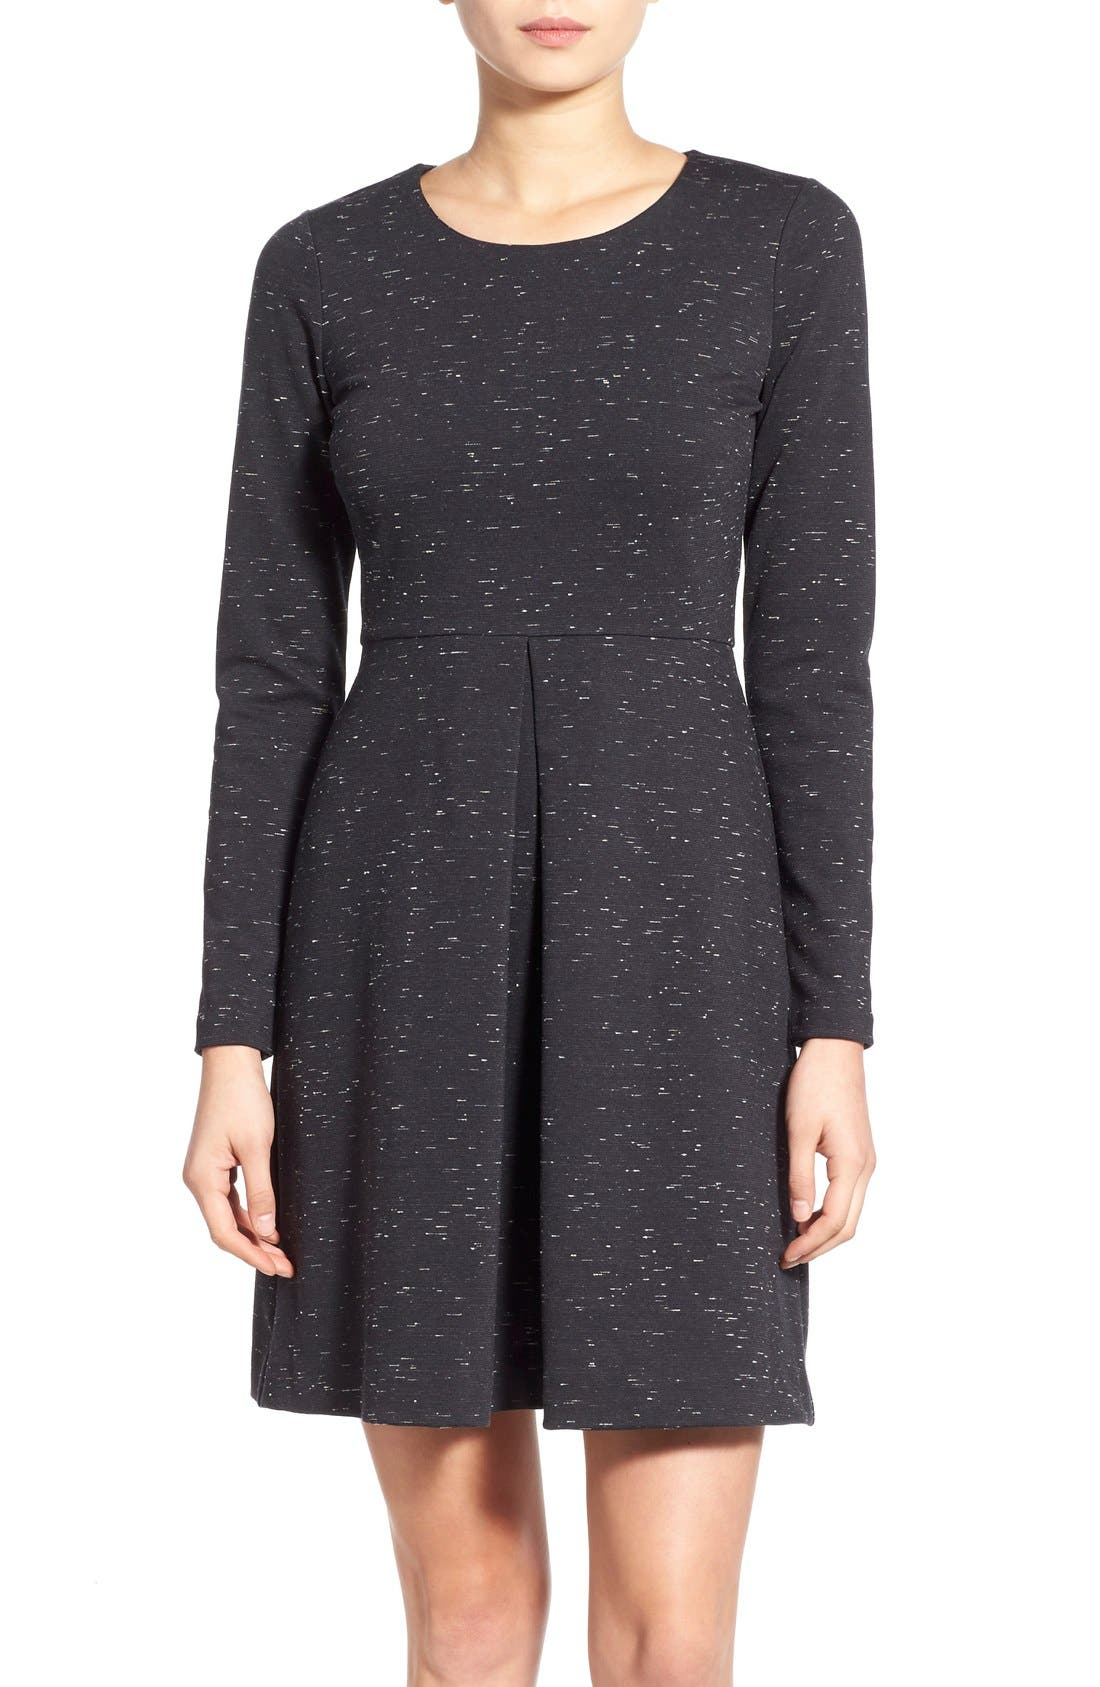 Alternate Image 1 Selected - Madewell 'Gia' Marled Fit & Flare Dress